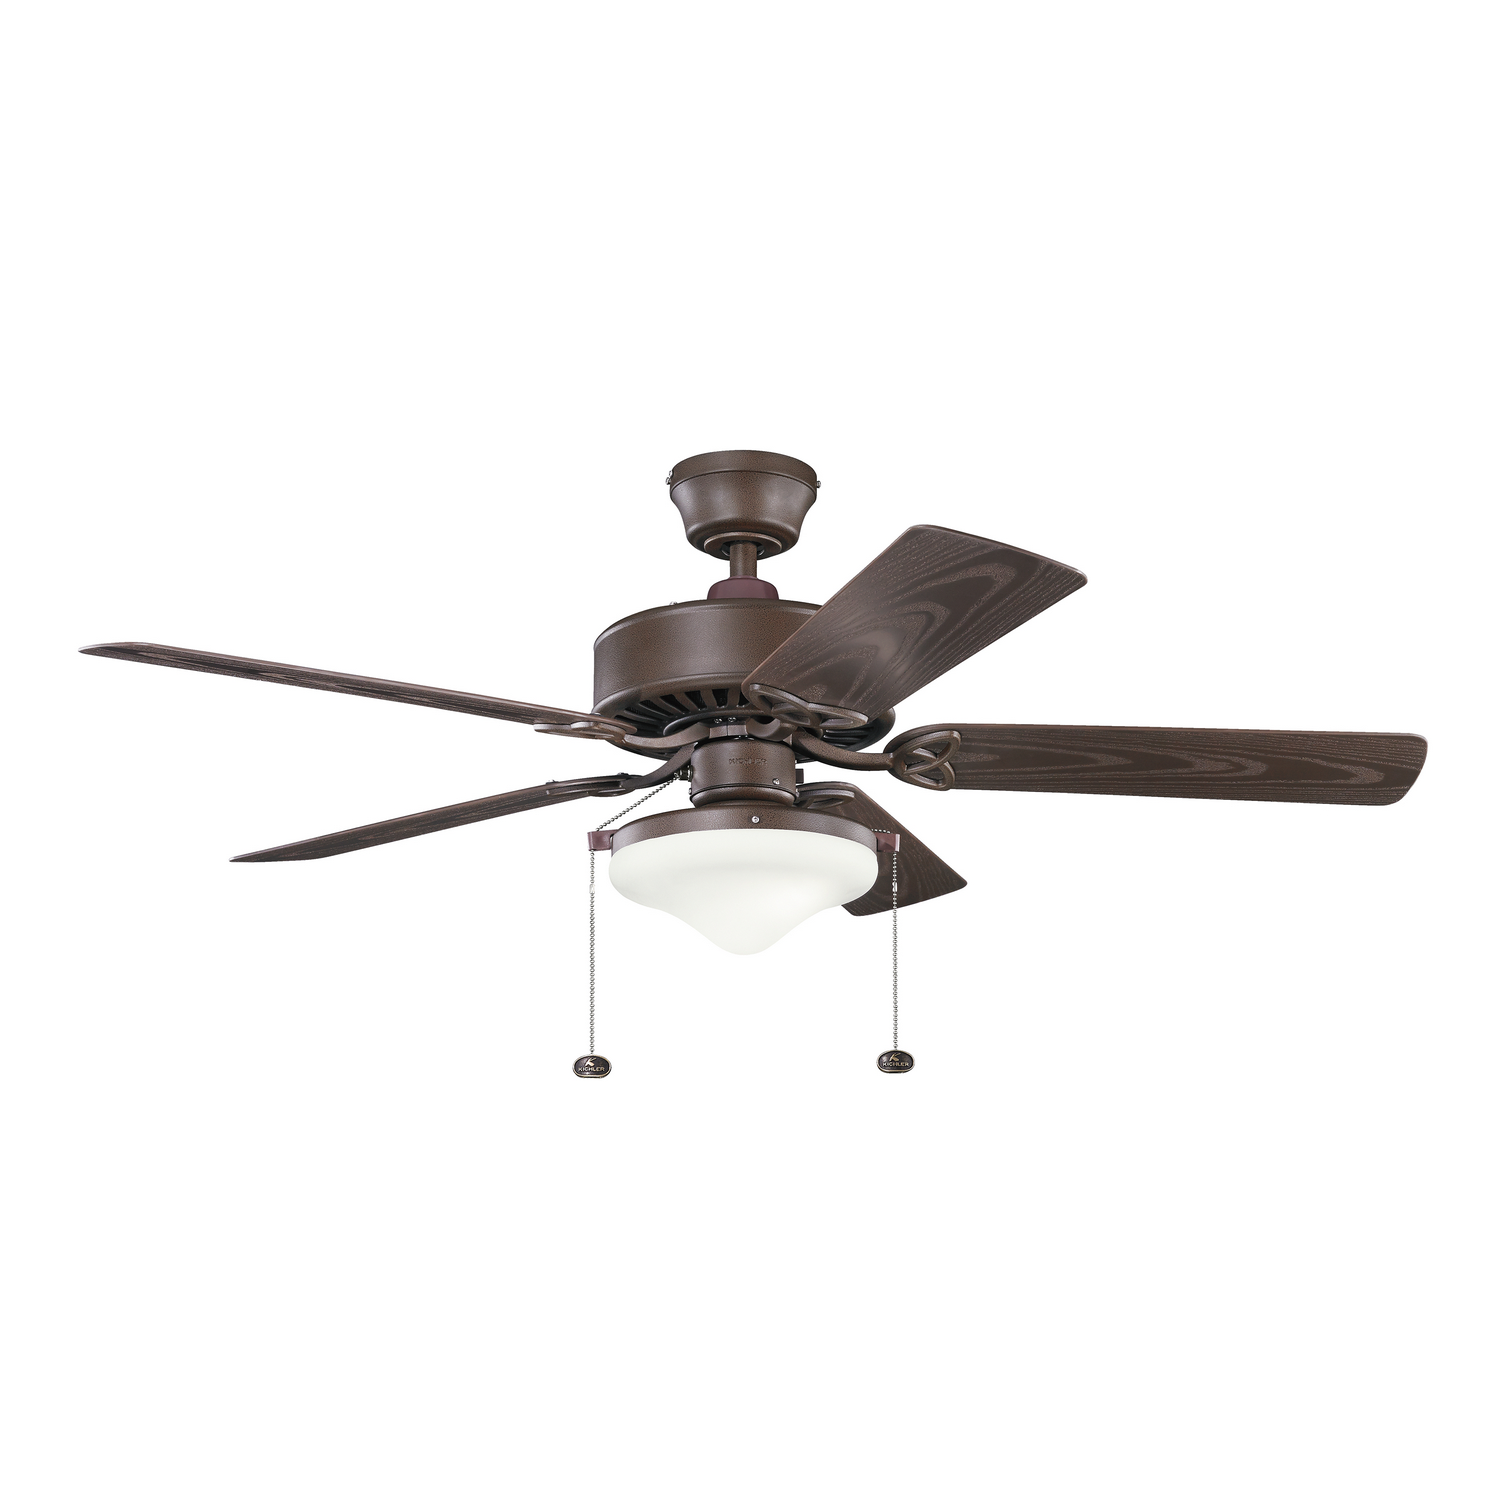 52 inchCeiling Fan from the Patio collection by Kichler 339516TZP